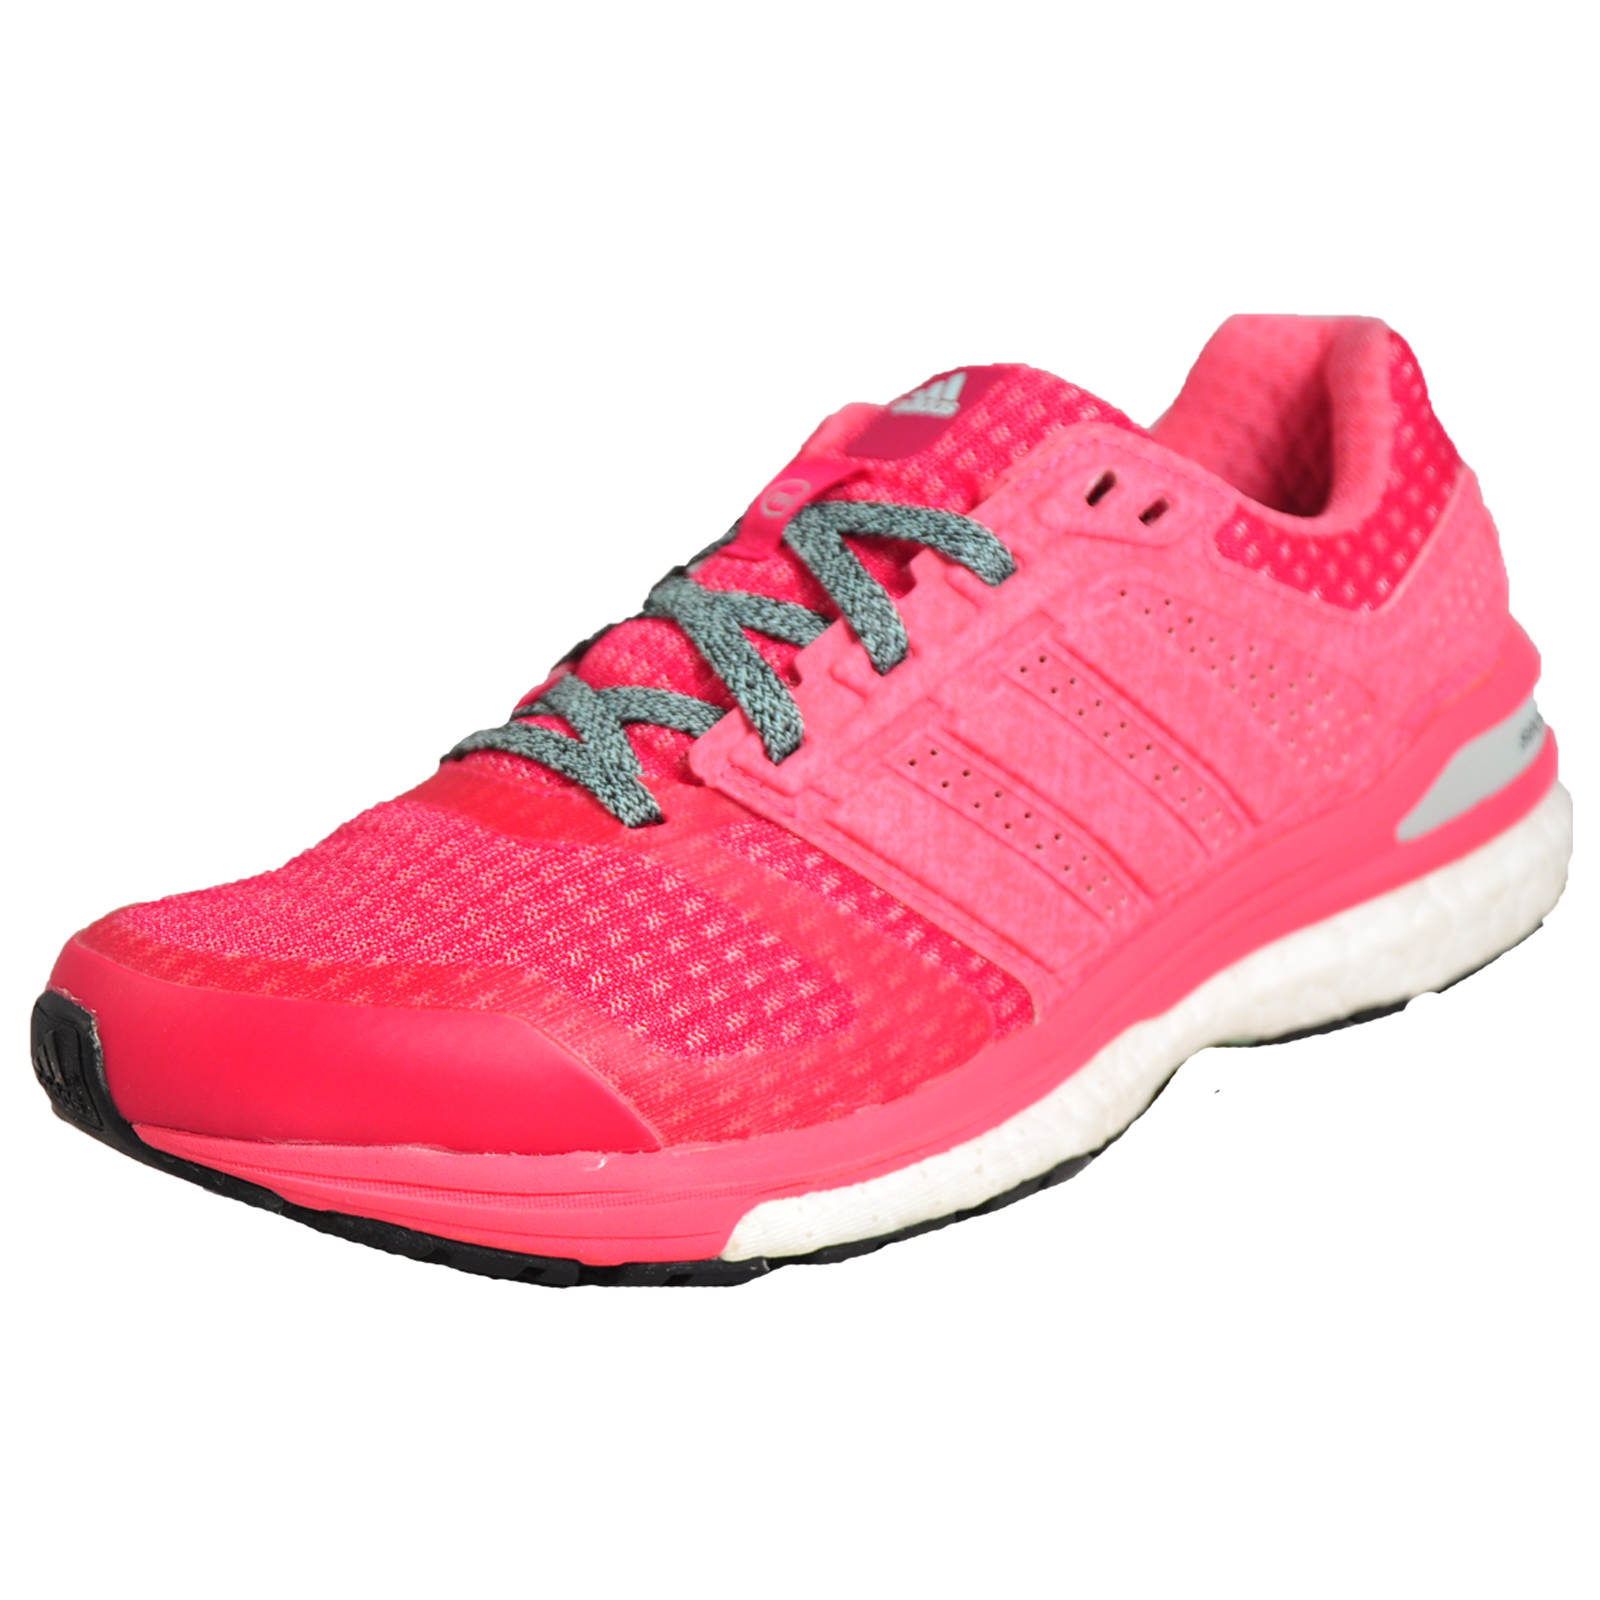 more photos 00e26 34c39 Details about Womens Ladies Adidas Supernova Sequence Boost 8 Women s  Running Shoes Fitness Gy. Listed for charity